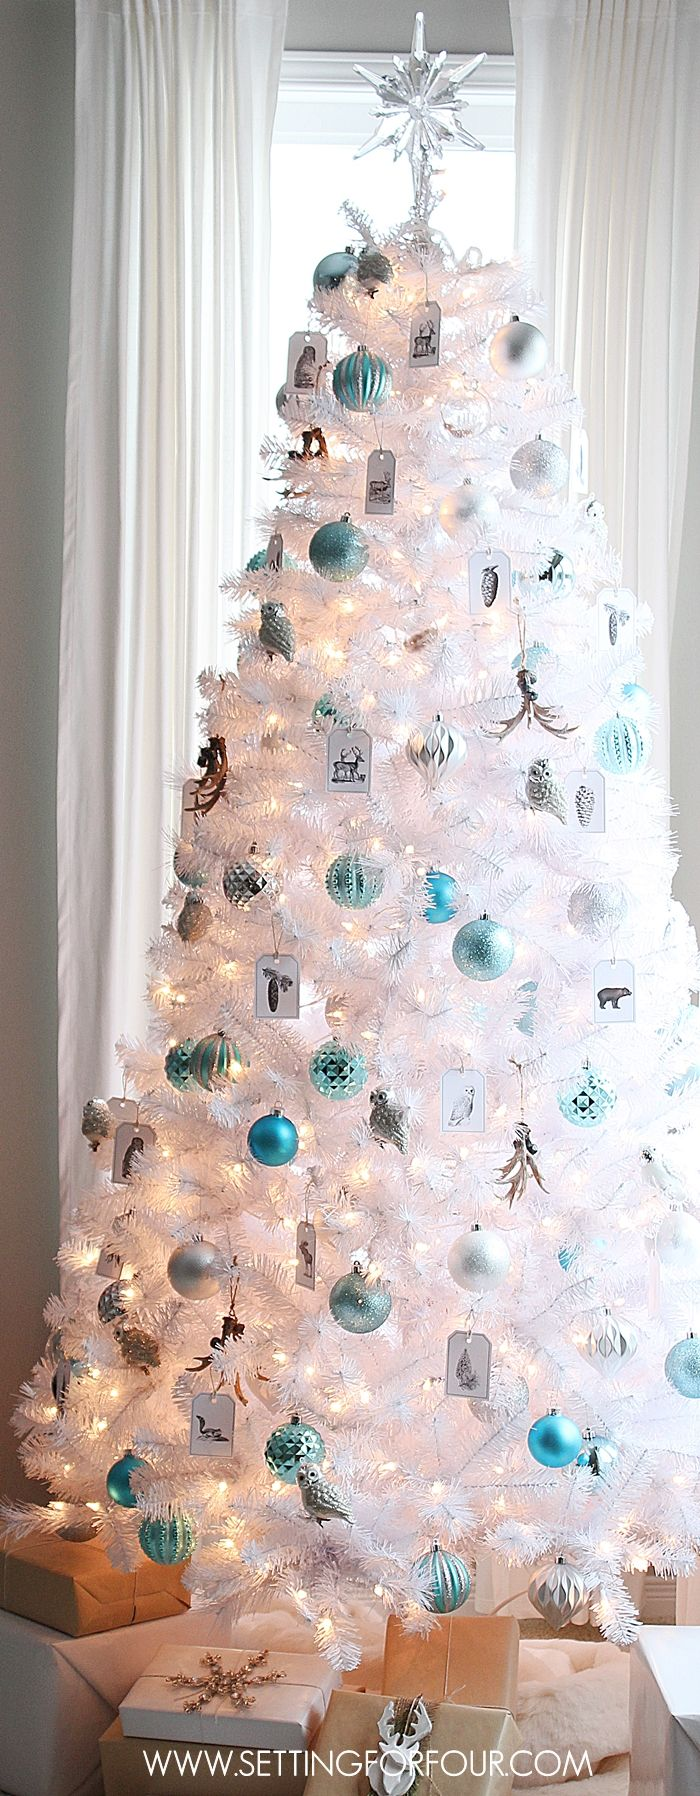 See how I decorated my Winter Woodland Glam White Christmas Tree for the holidays! DIY woodland animal ornament tags, blue and silver ornaments, antlers and simple white and brown craft paper gift wrap! www.settingforfour.com